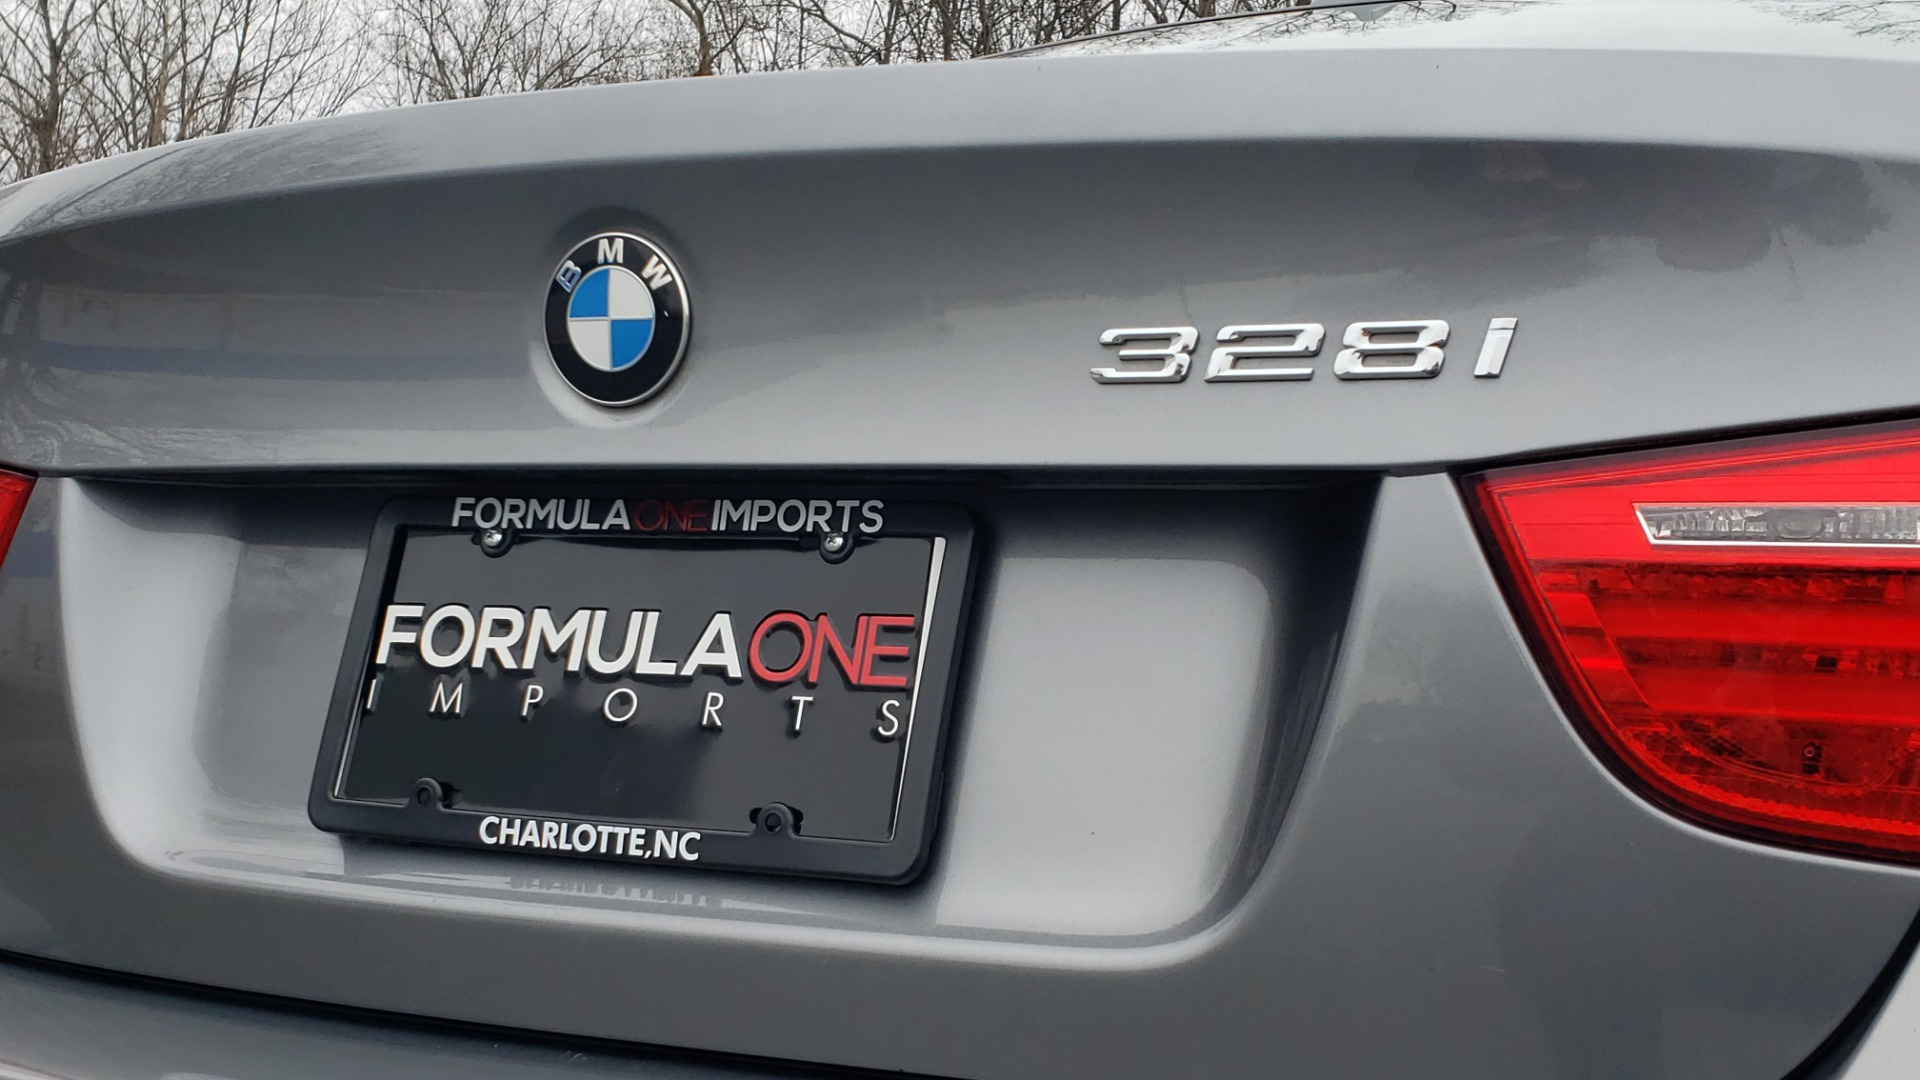 Used 2011 BMW 3 SERIES 328IXDRIVE PREMIUM / NAV / SUNROOF / HEATED SEATS for sale Sold at Formula Imports in Charlotte NC 28227 27